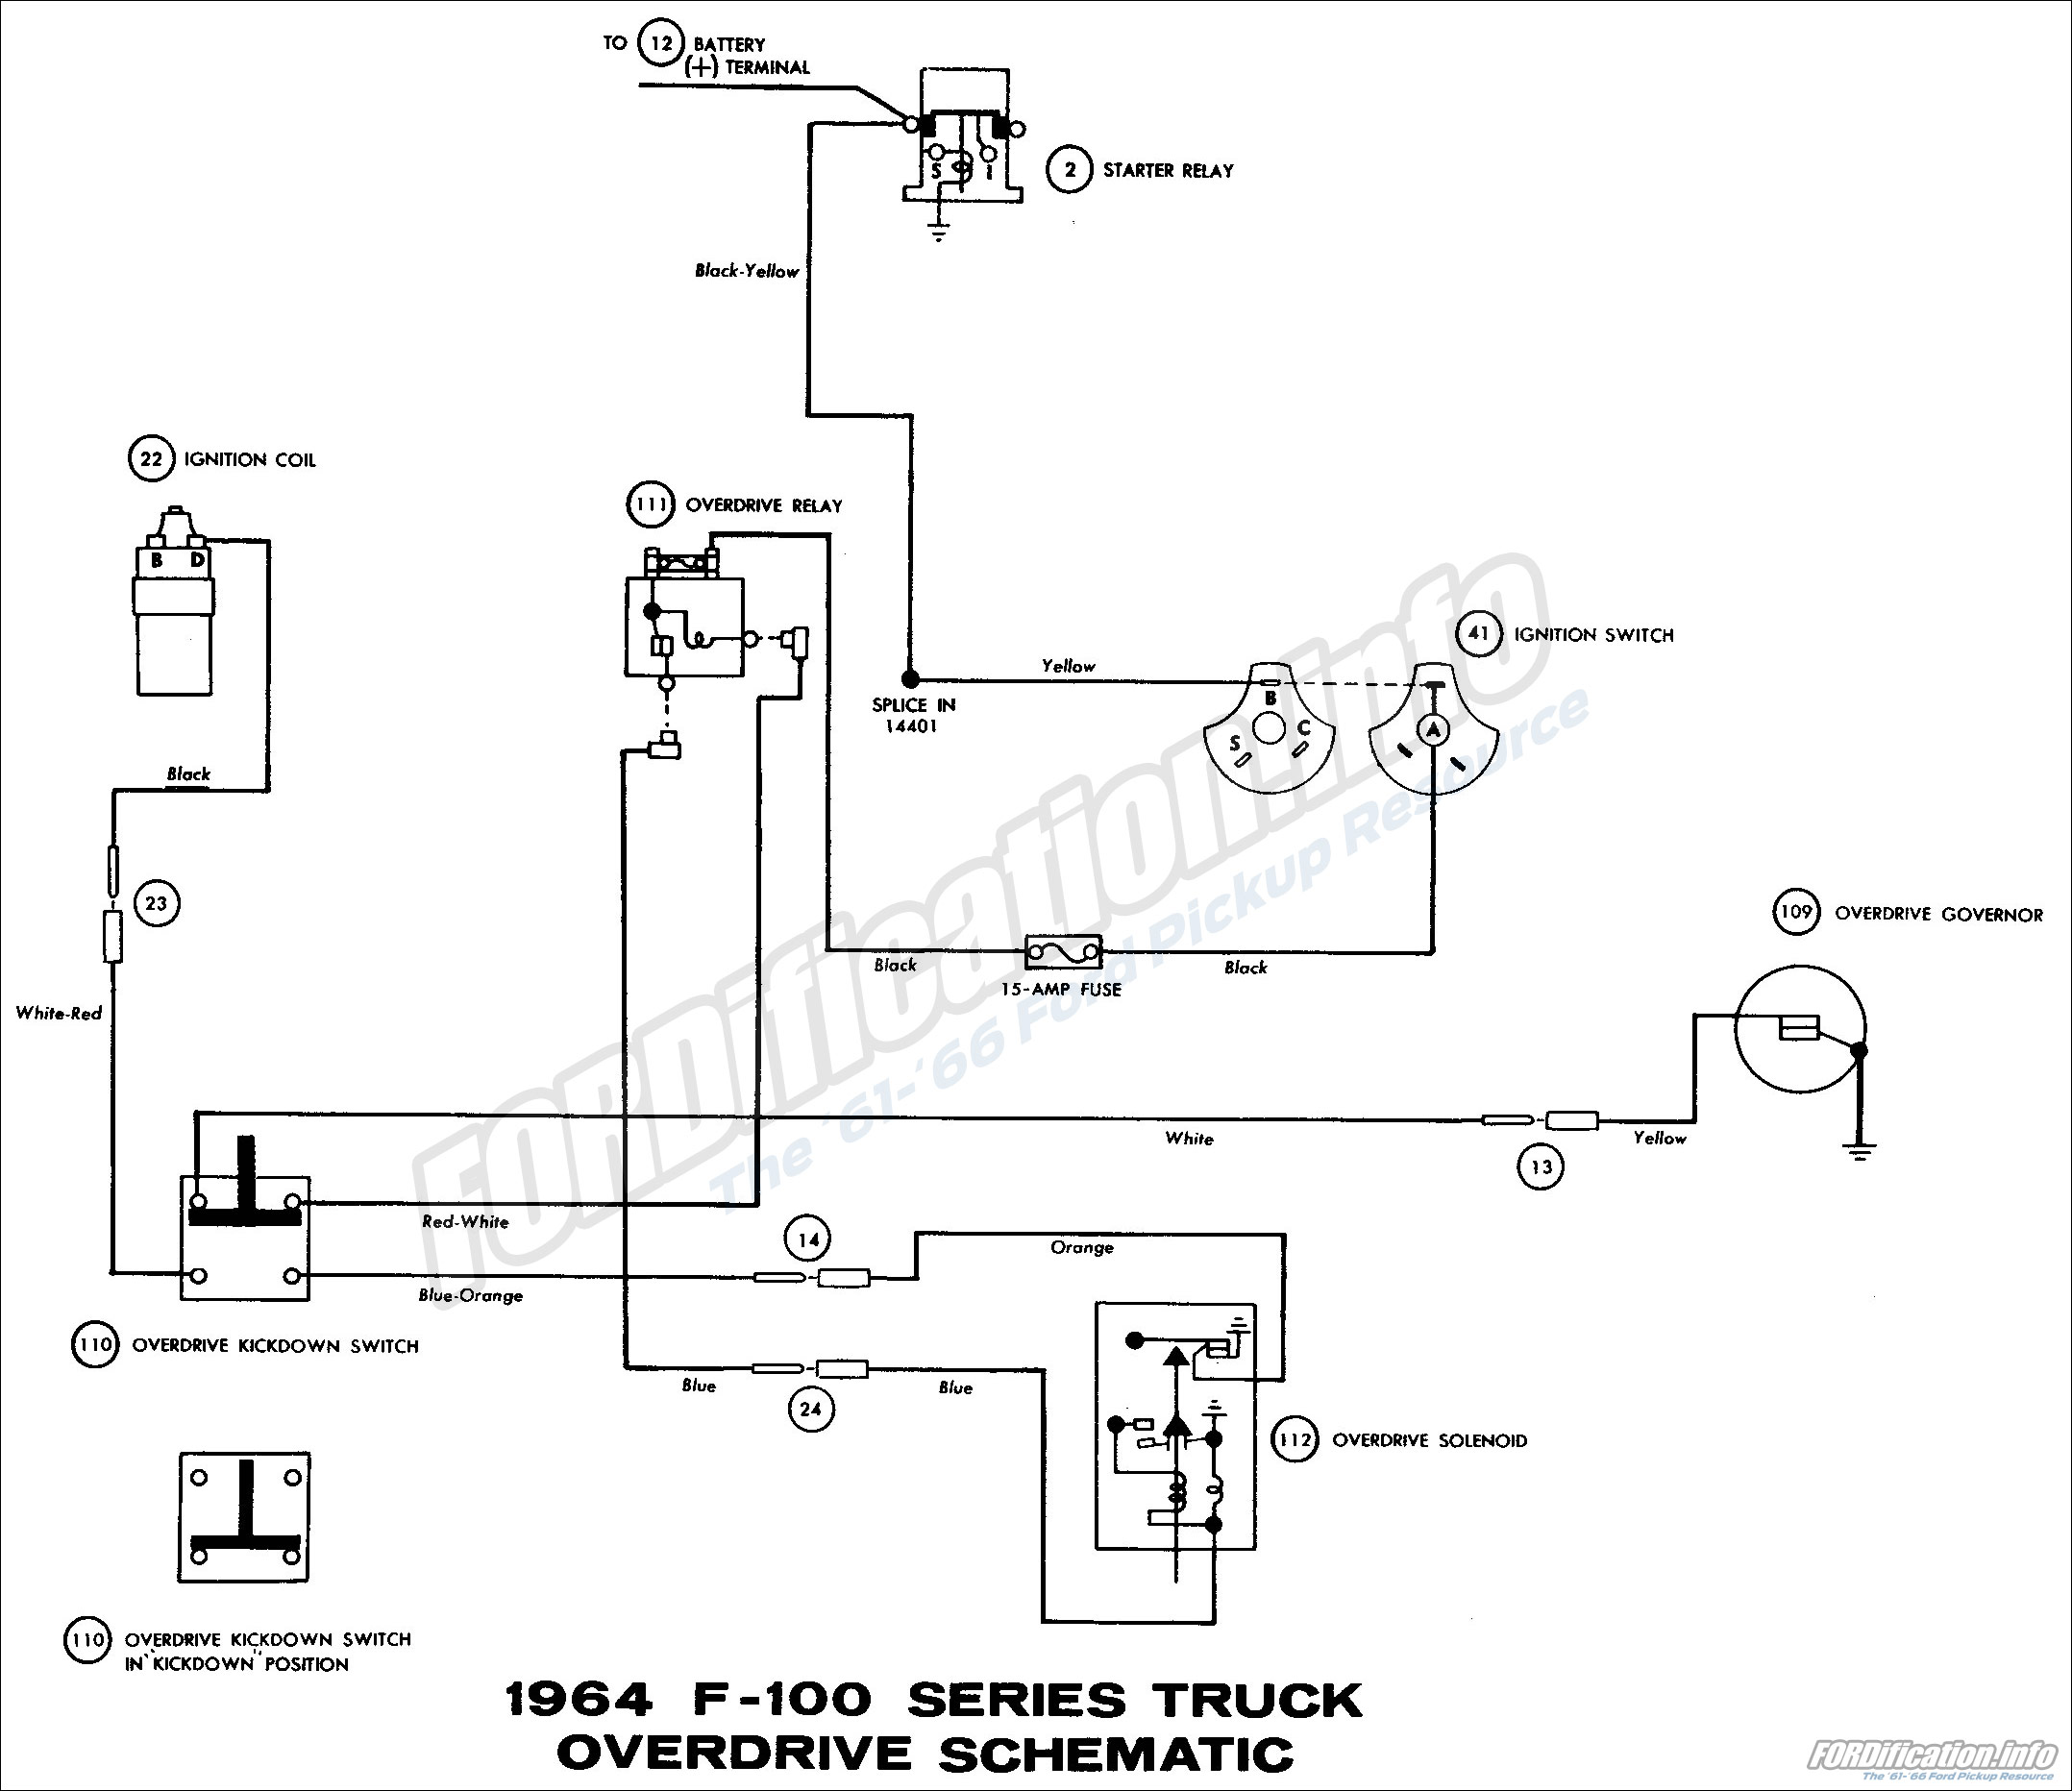 Basic Ford Ignition Wiring Diagram - Wiring Diagram Secrets on